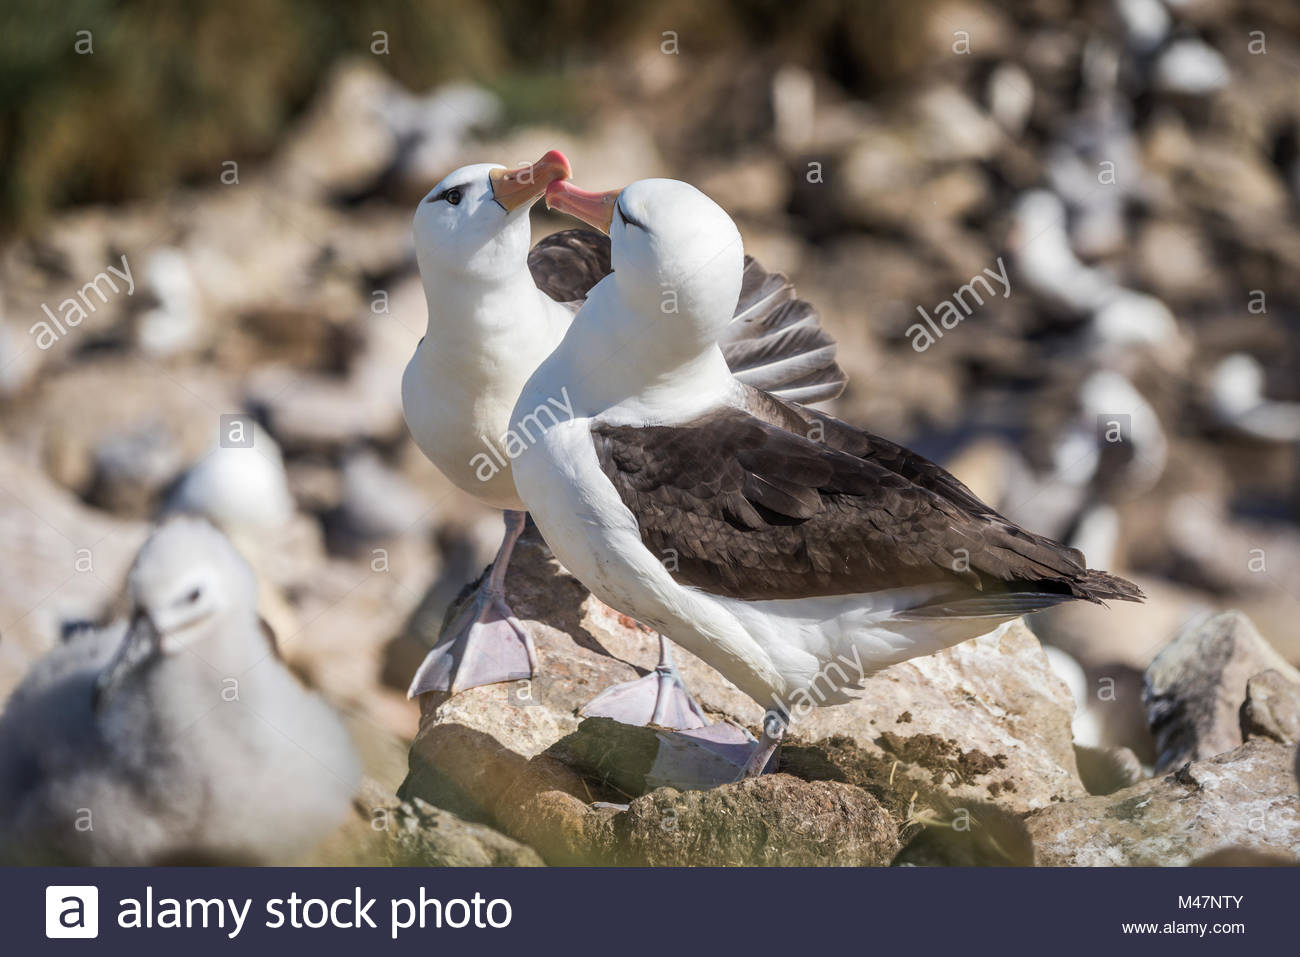 Pair of courting black-browed albatross touching beaks - Stock Image